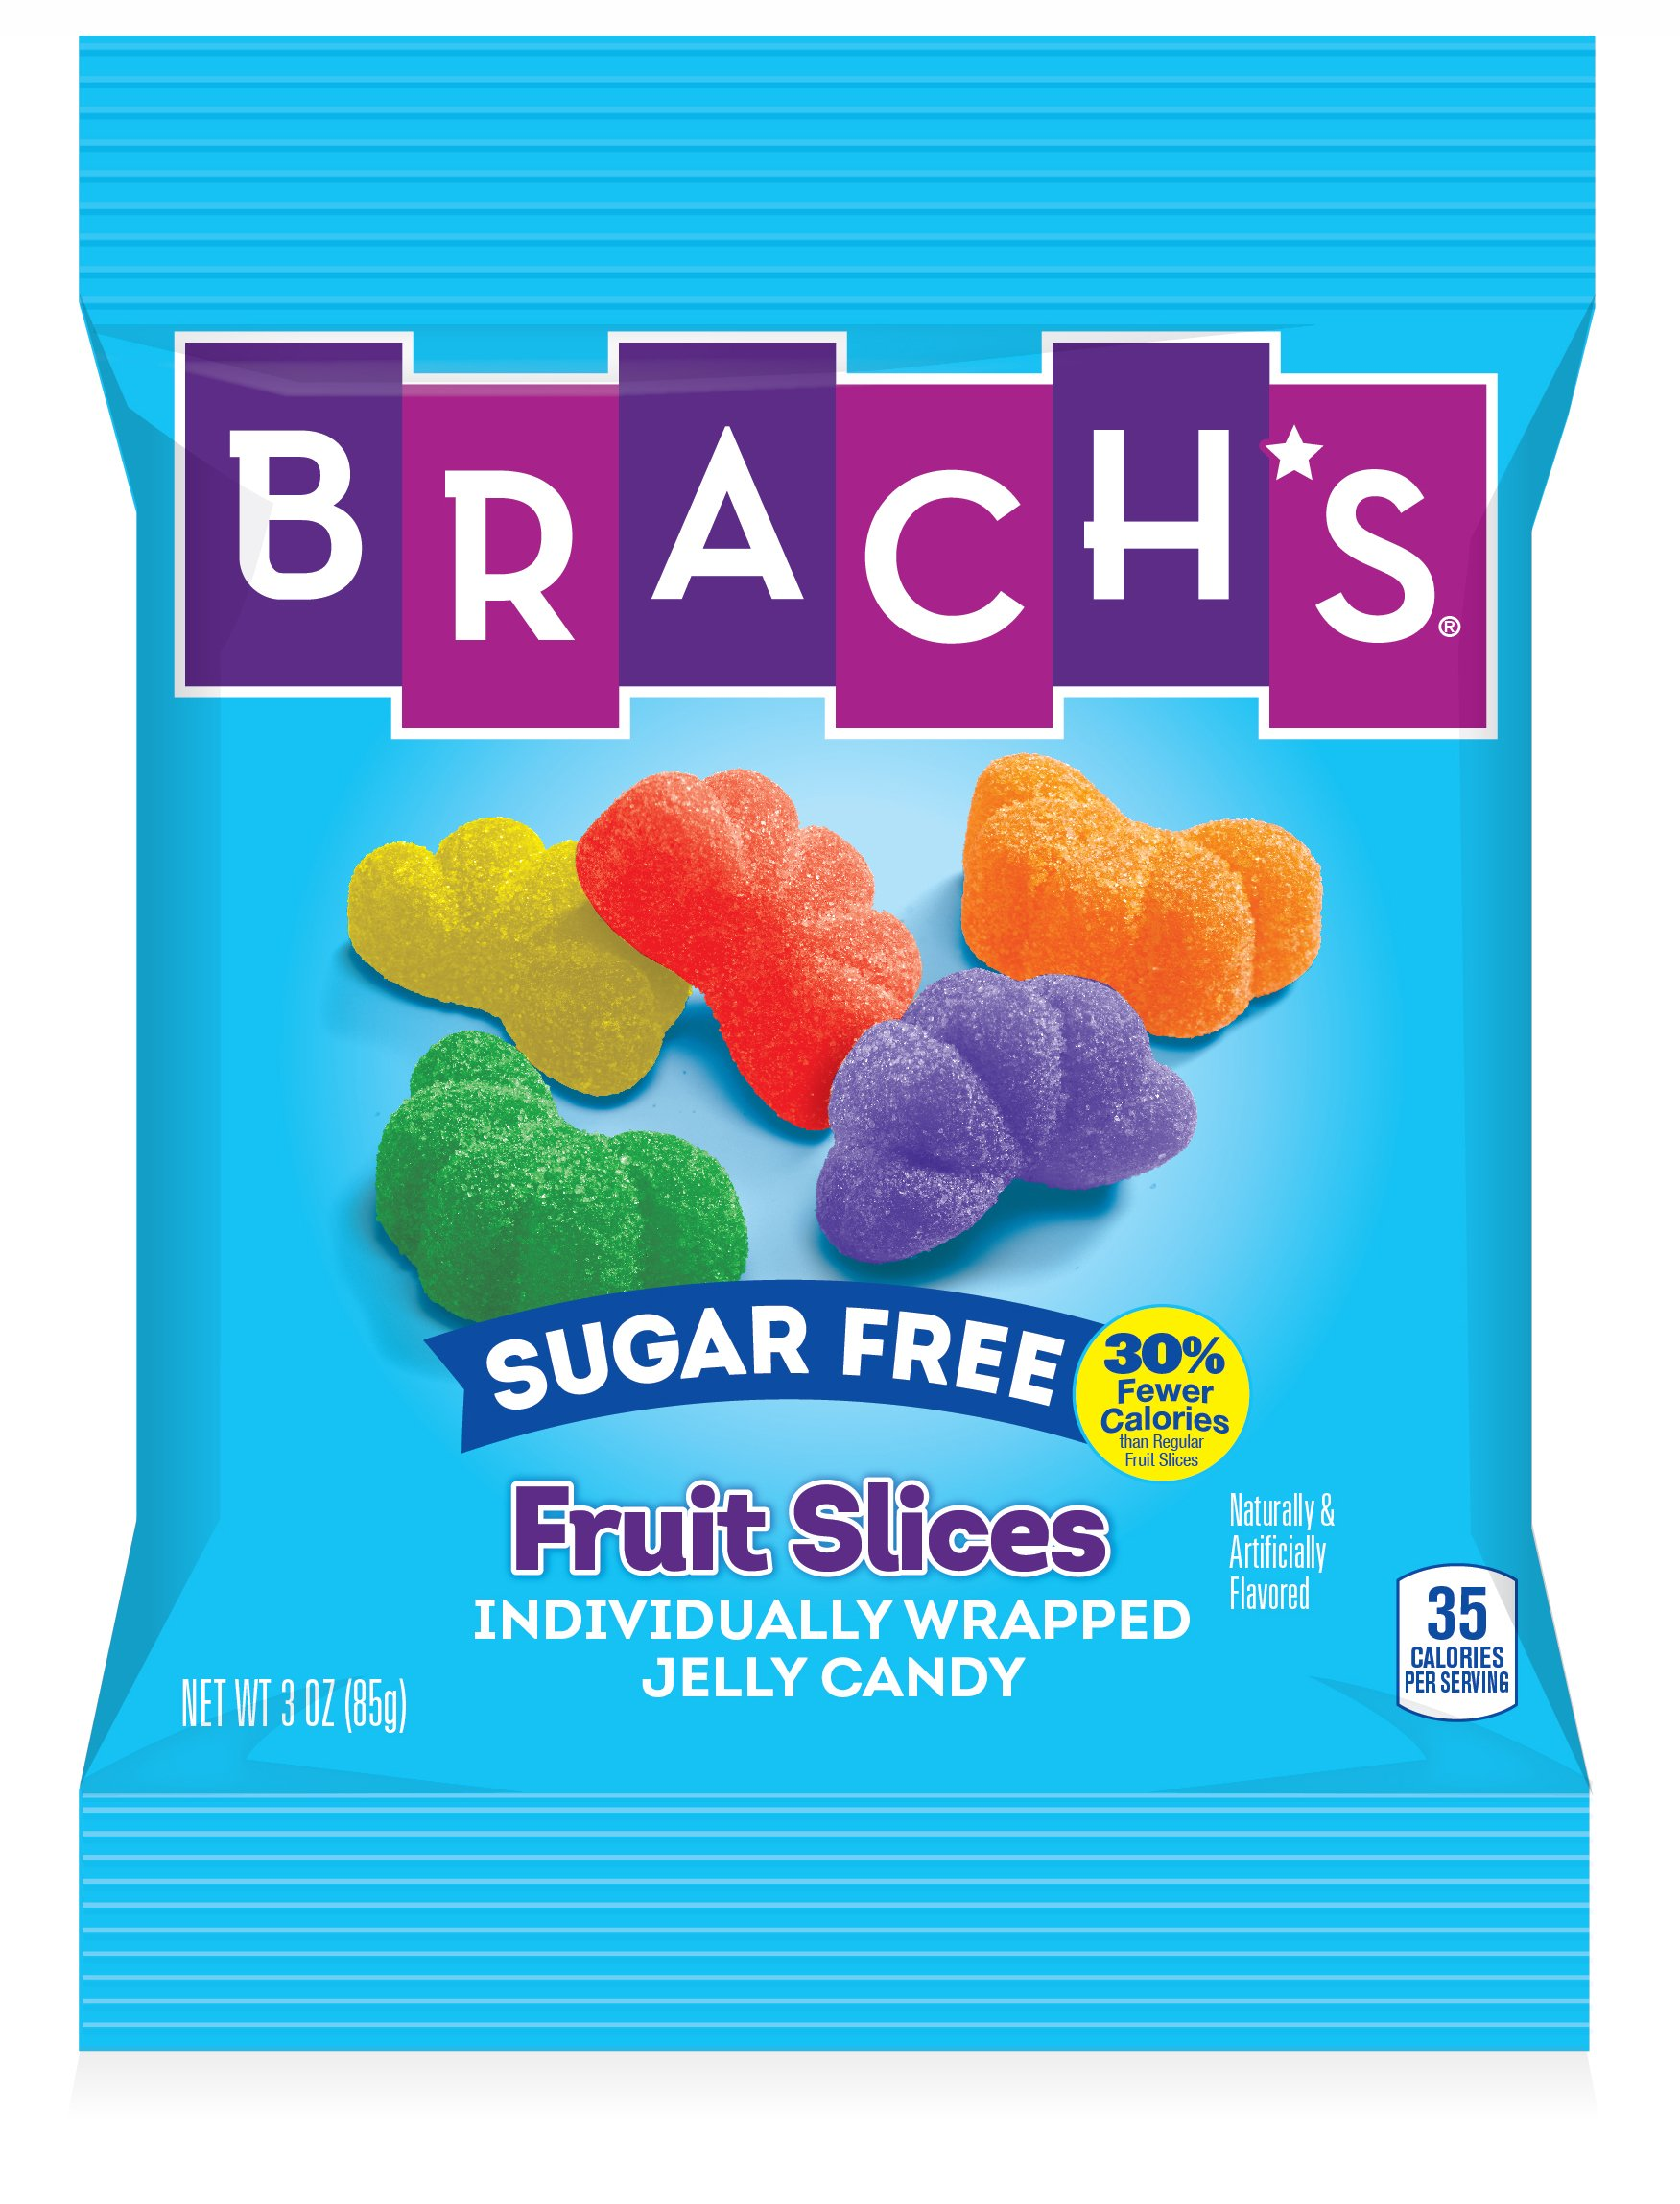 Brach's Sugar Free Fruit Slices Gummy Candy, 3 Ounce Bag, Pack of 12 by Brach's (Image #3)